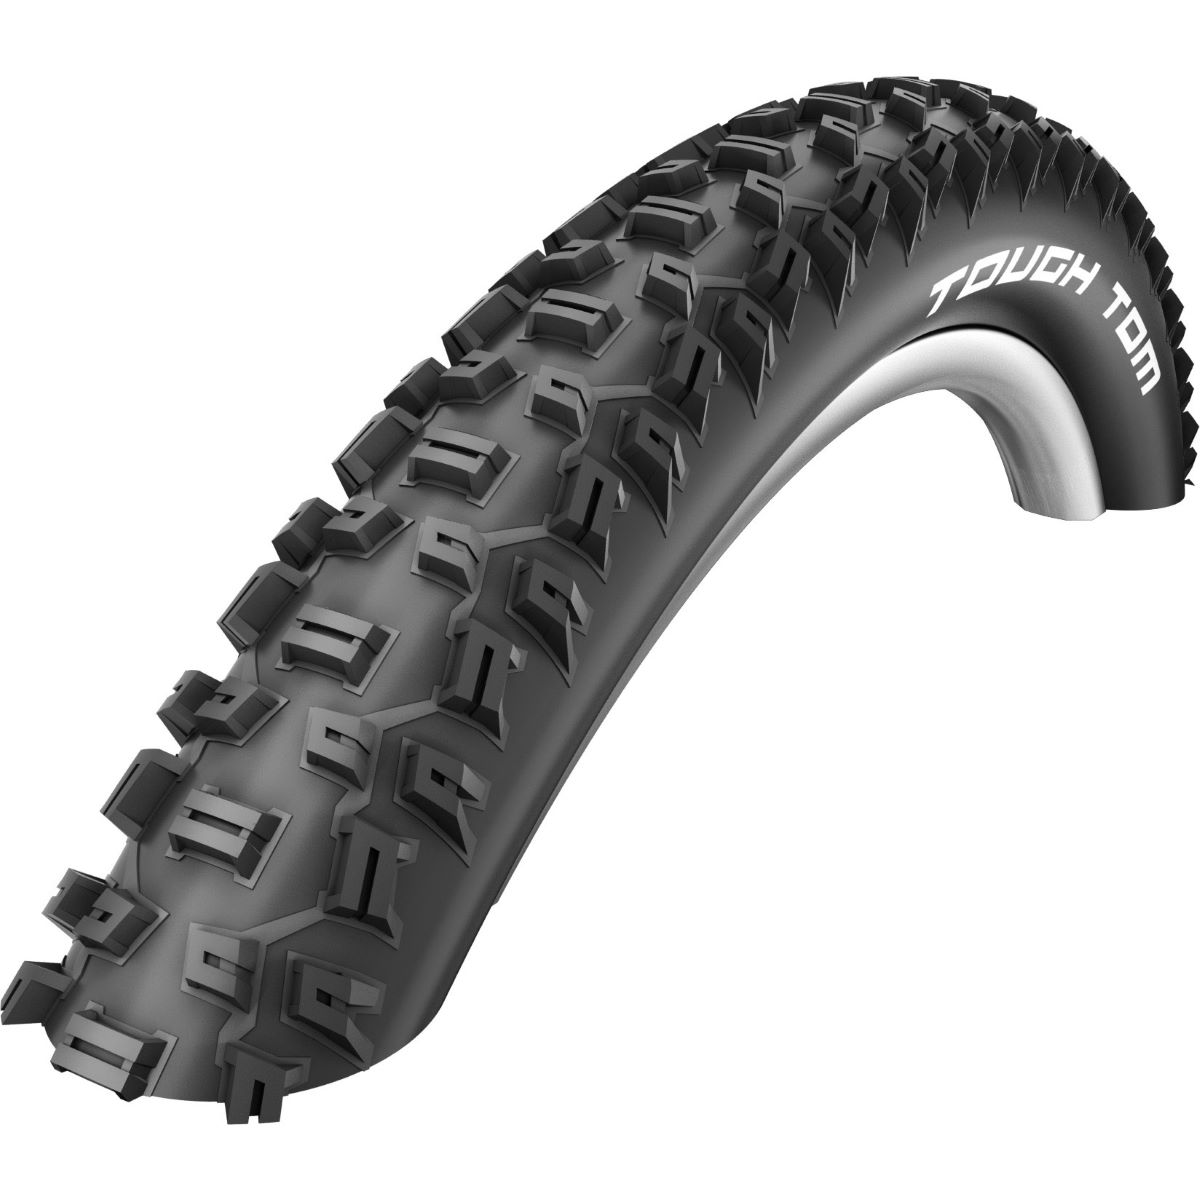 Schwalbe Tough Tom MTB Tyre - K-Guard   Tyres